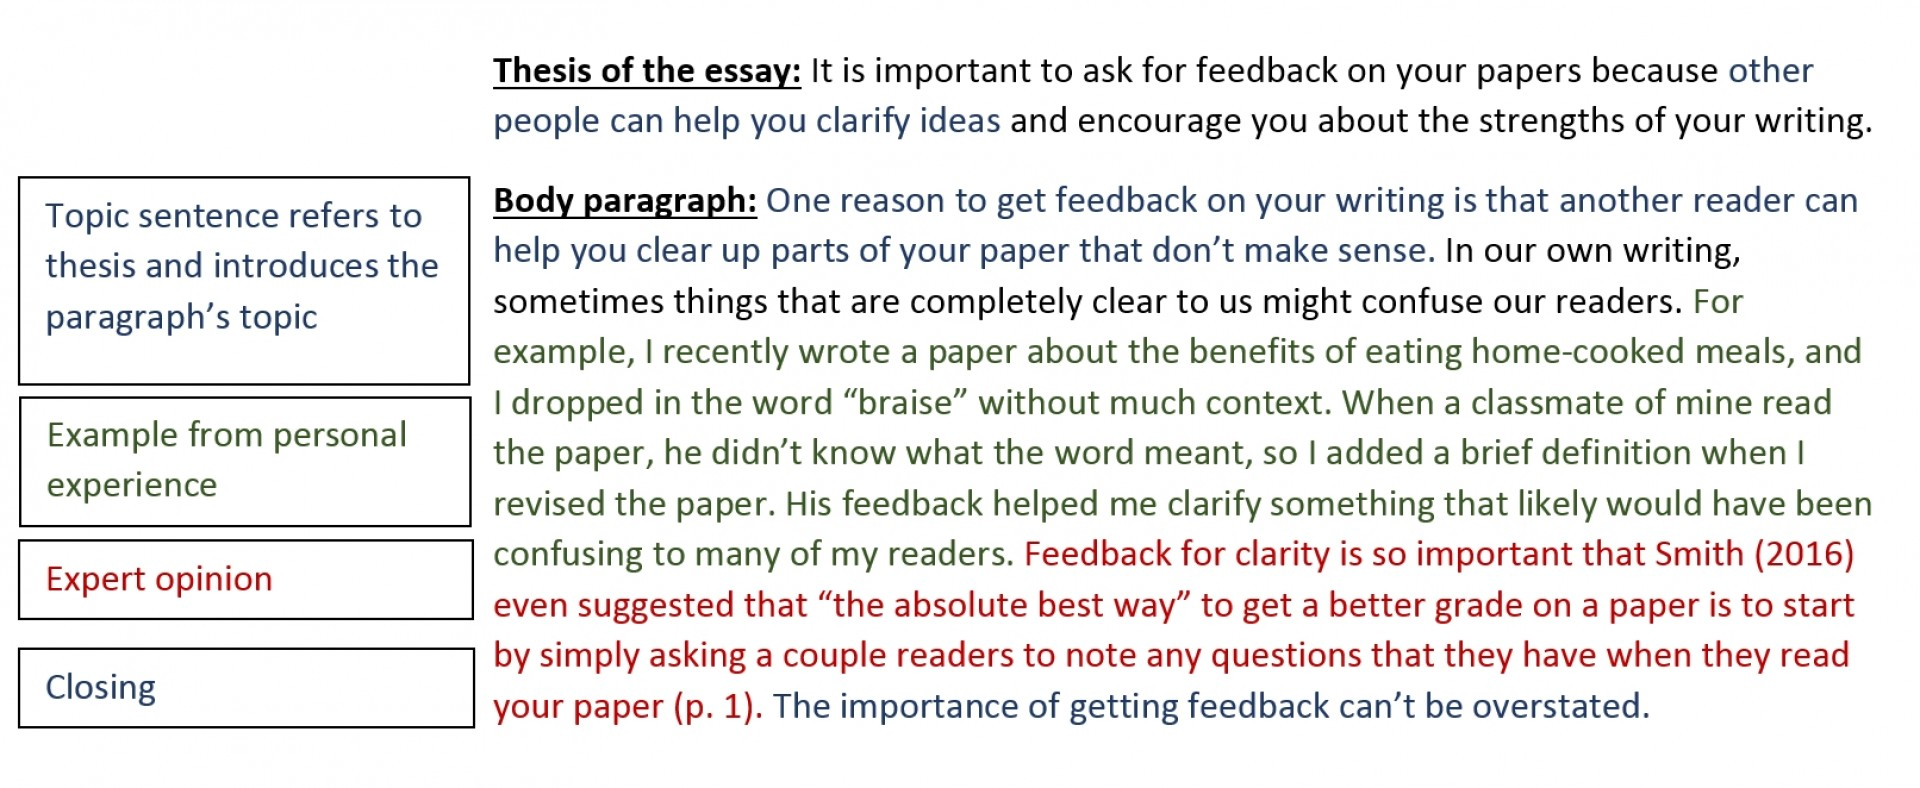 013 Introduction Paragraph For Research Paper Example Body Paragraphs Writing Your Guides At Eastern With Regard Exceptional A 1920